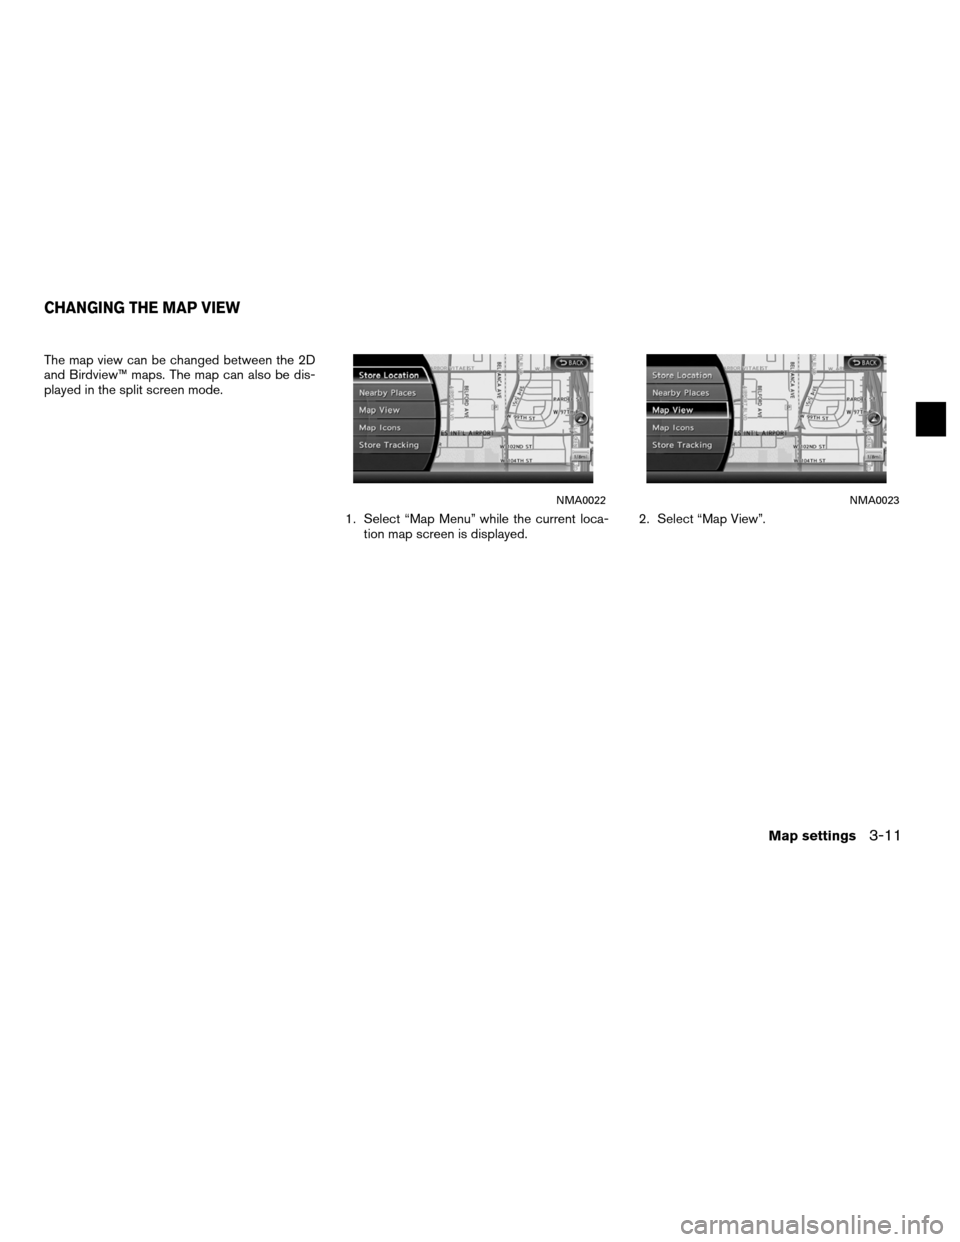 NISSAN ALTIMA HYBRID 2011 L32A / 4.G Navigation Manual, Page 57